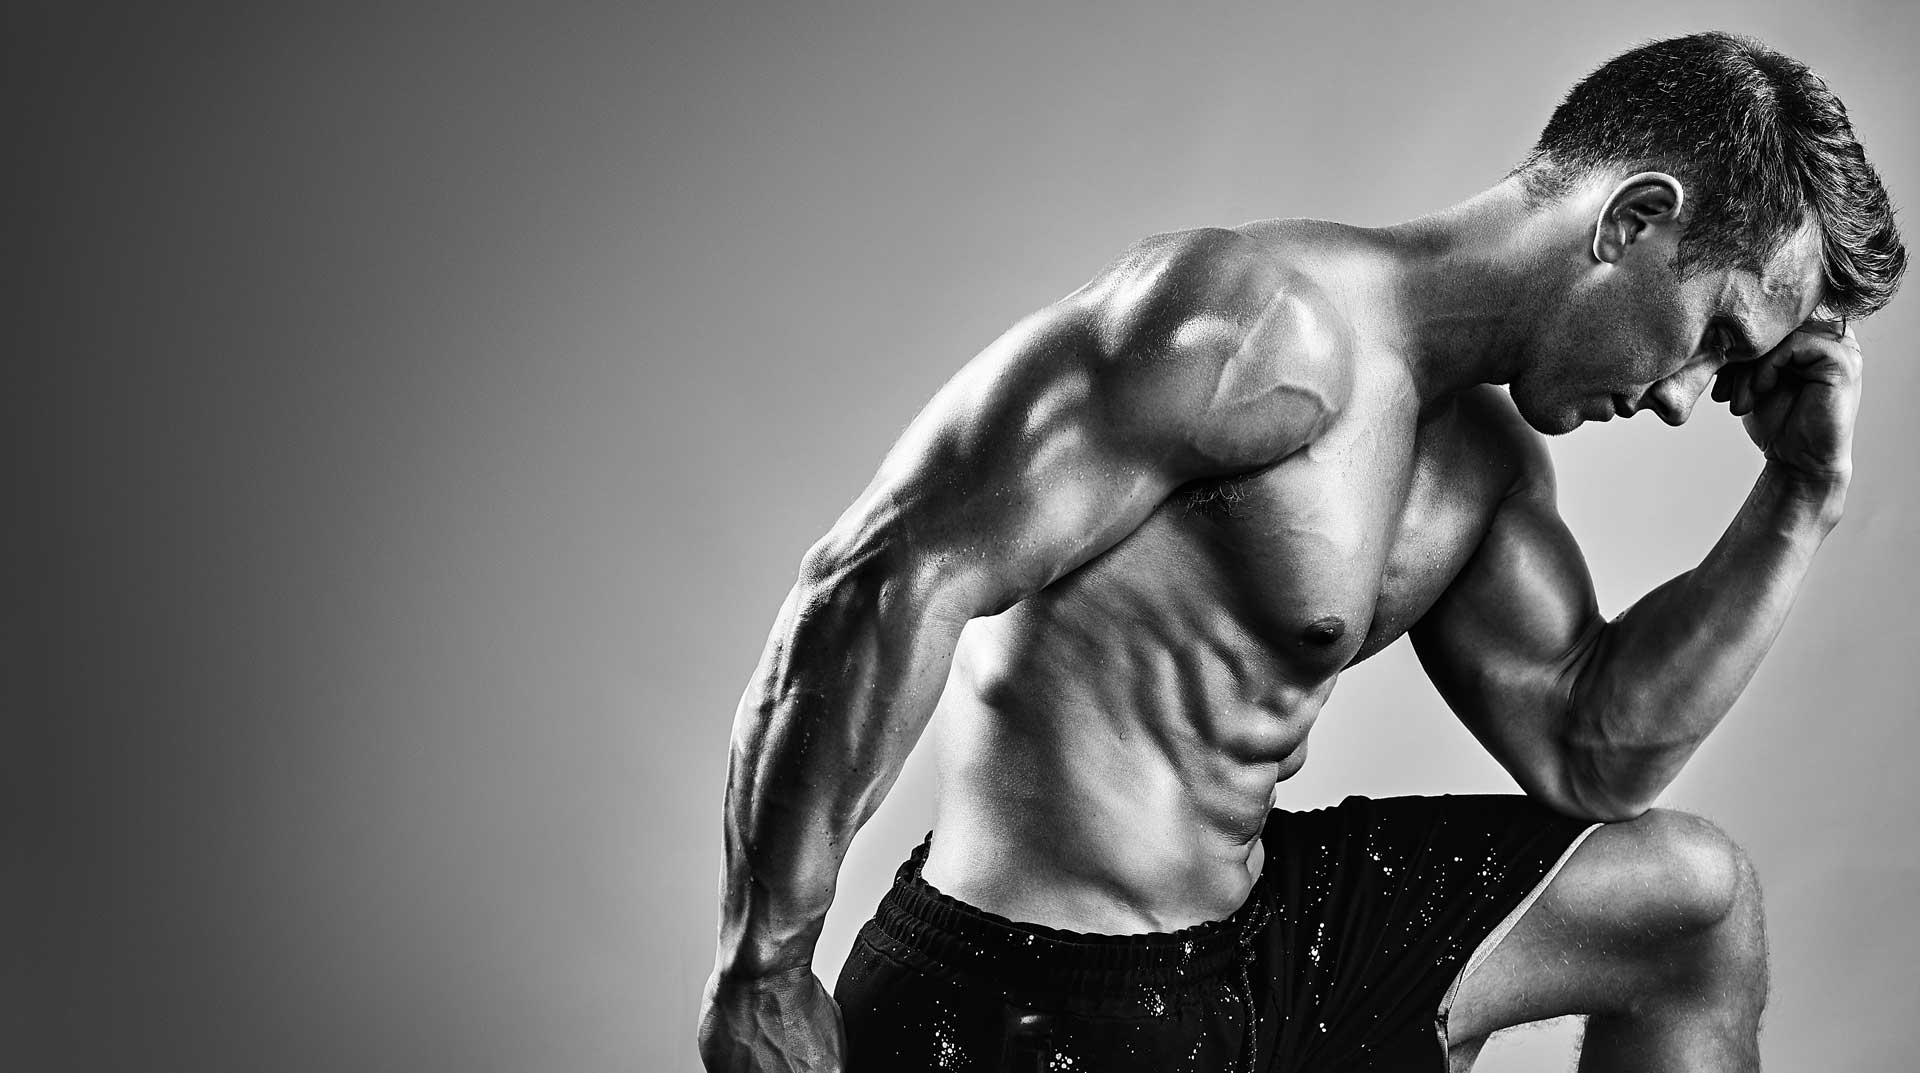 Black and white portrait of muscular bodybuilder with defined abs